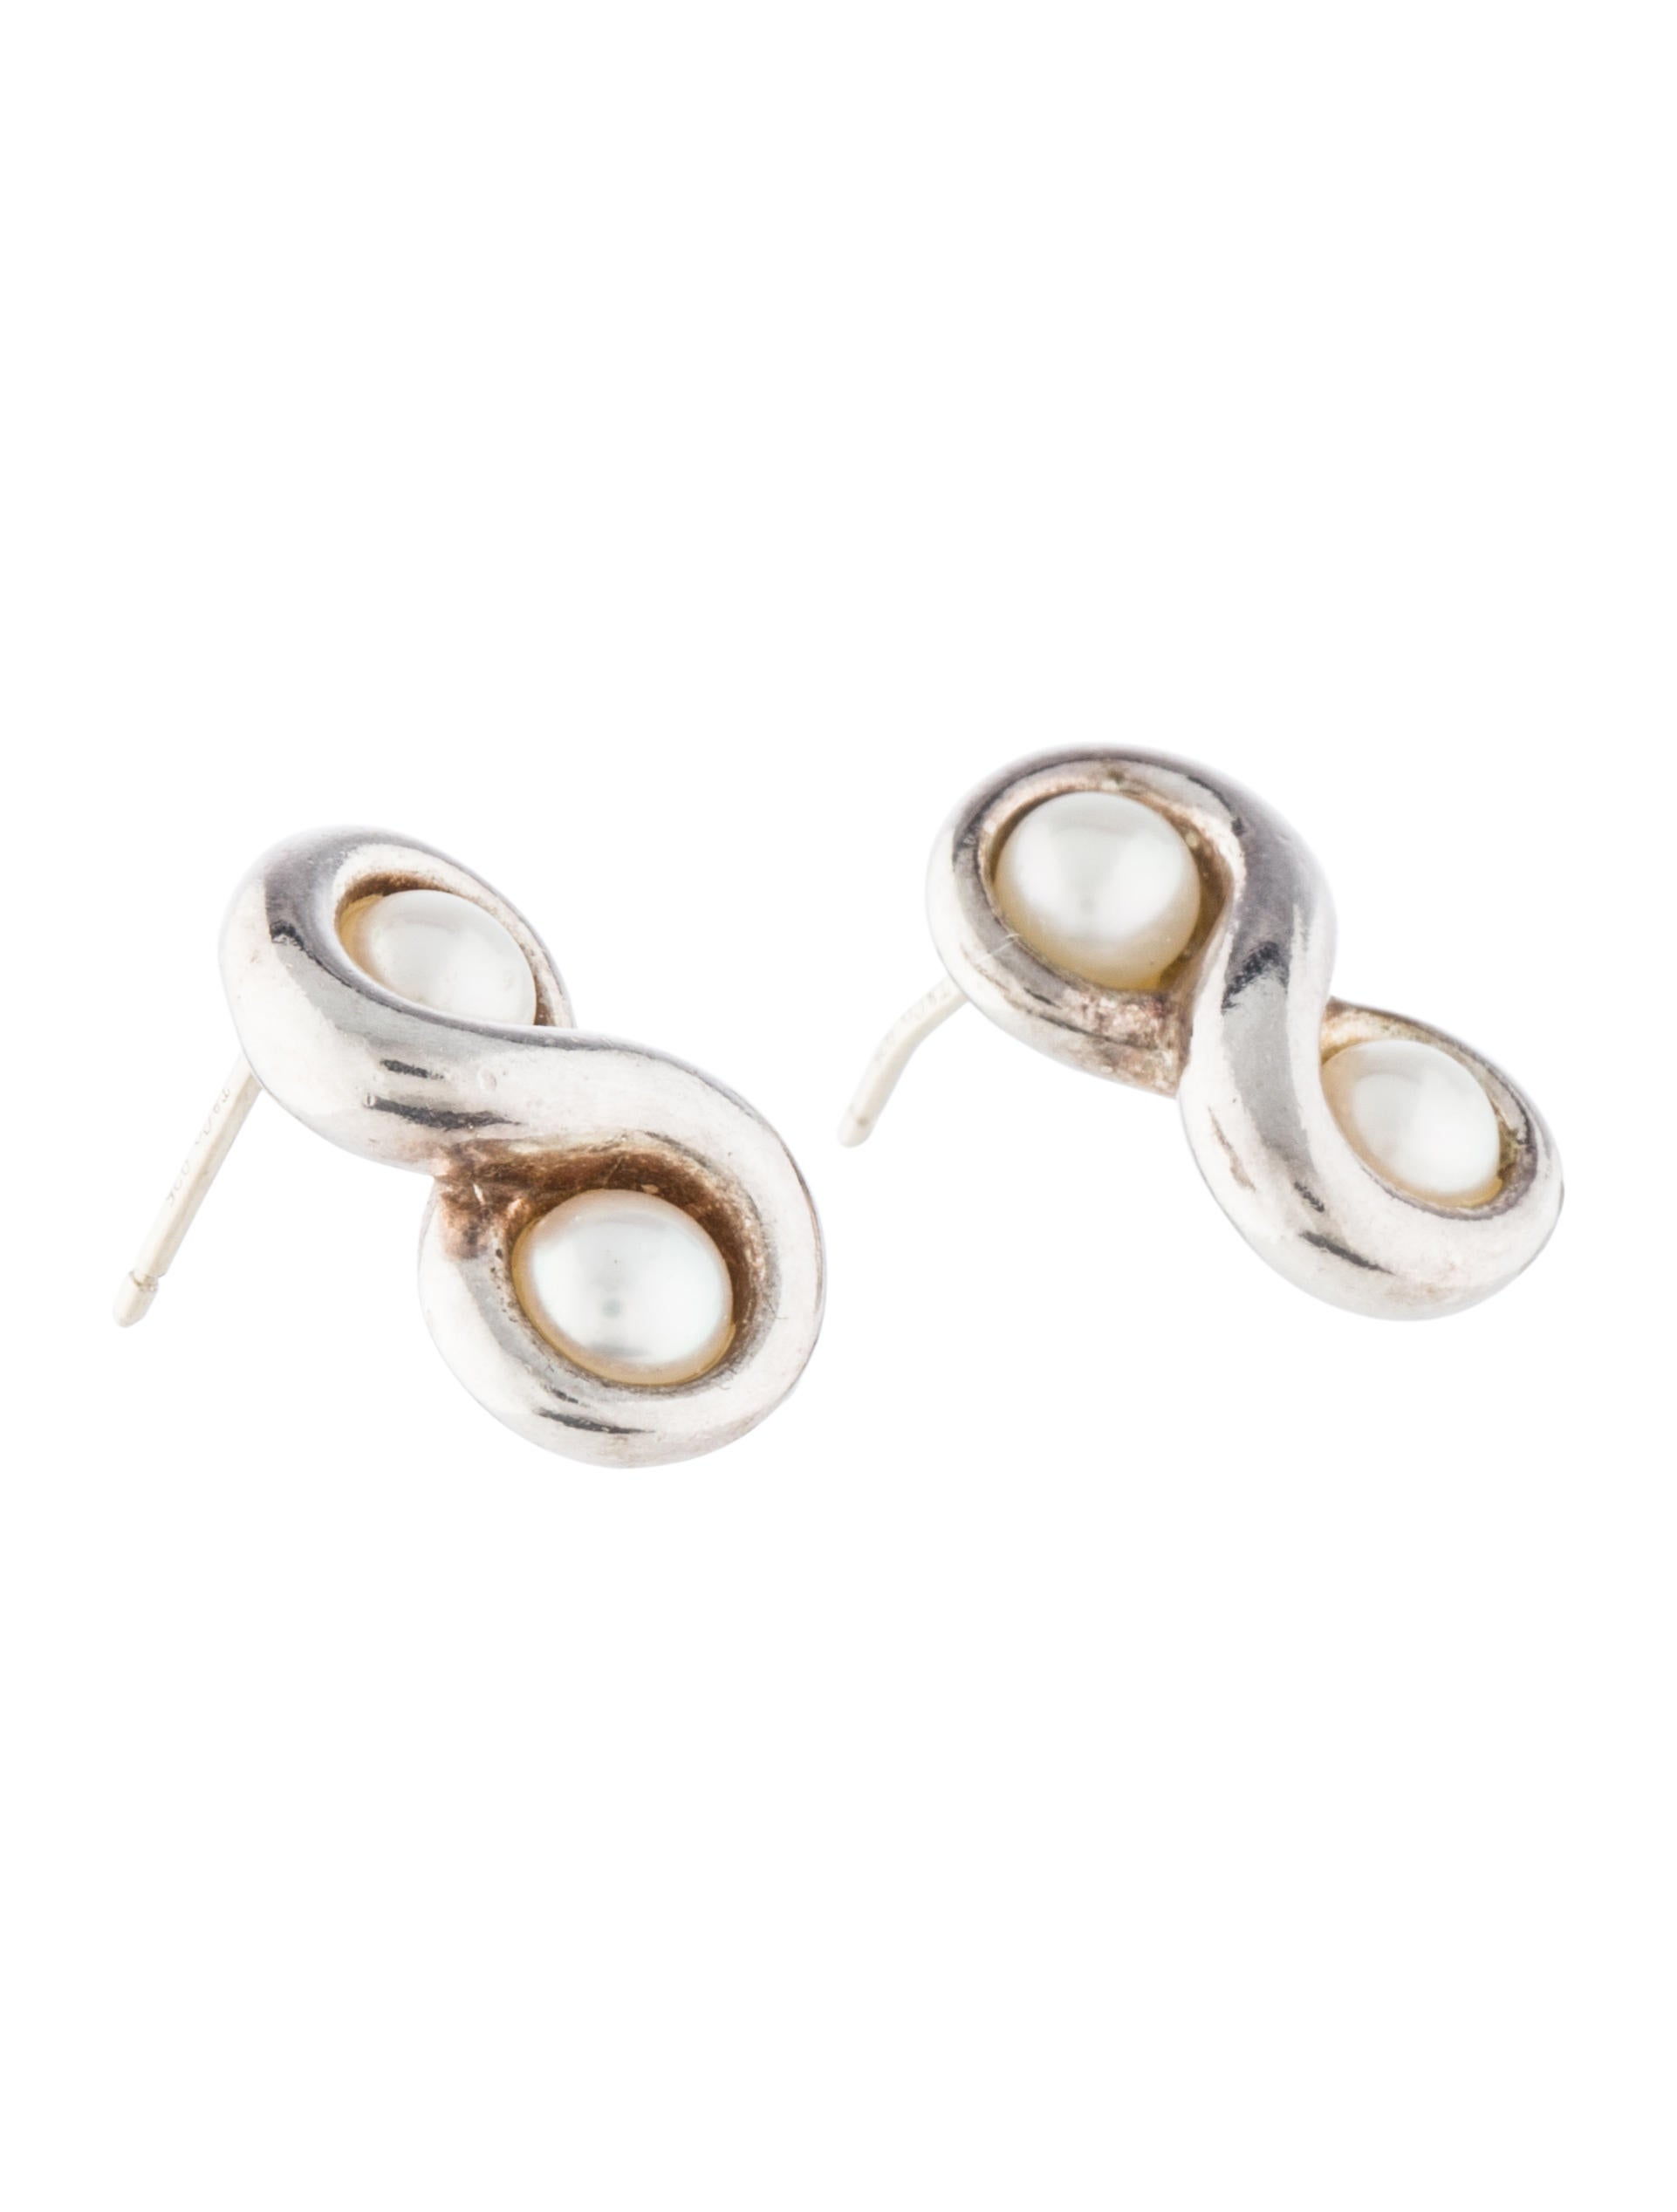 pearl and shop white stud earrings silver buy claudia bradby real duo